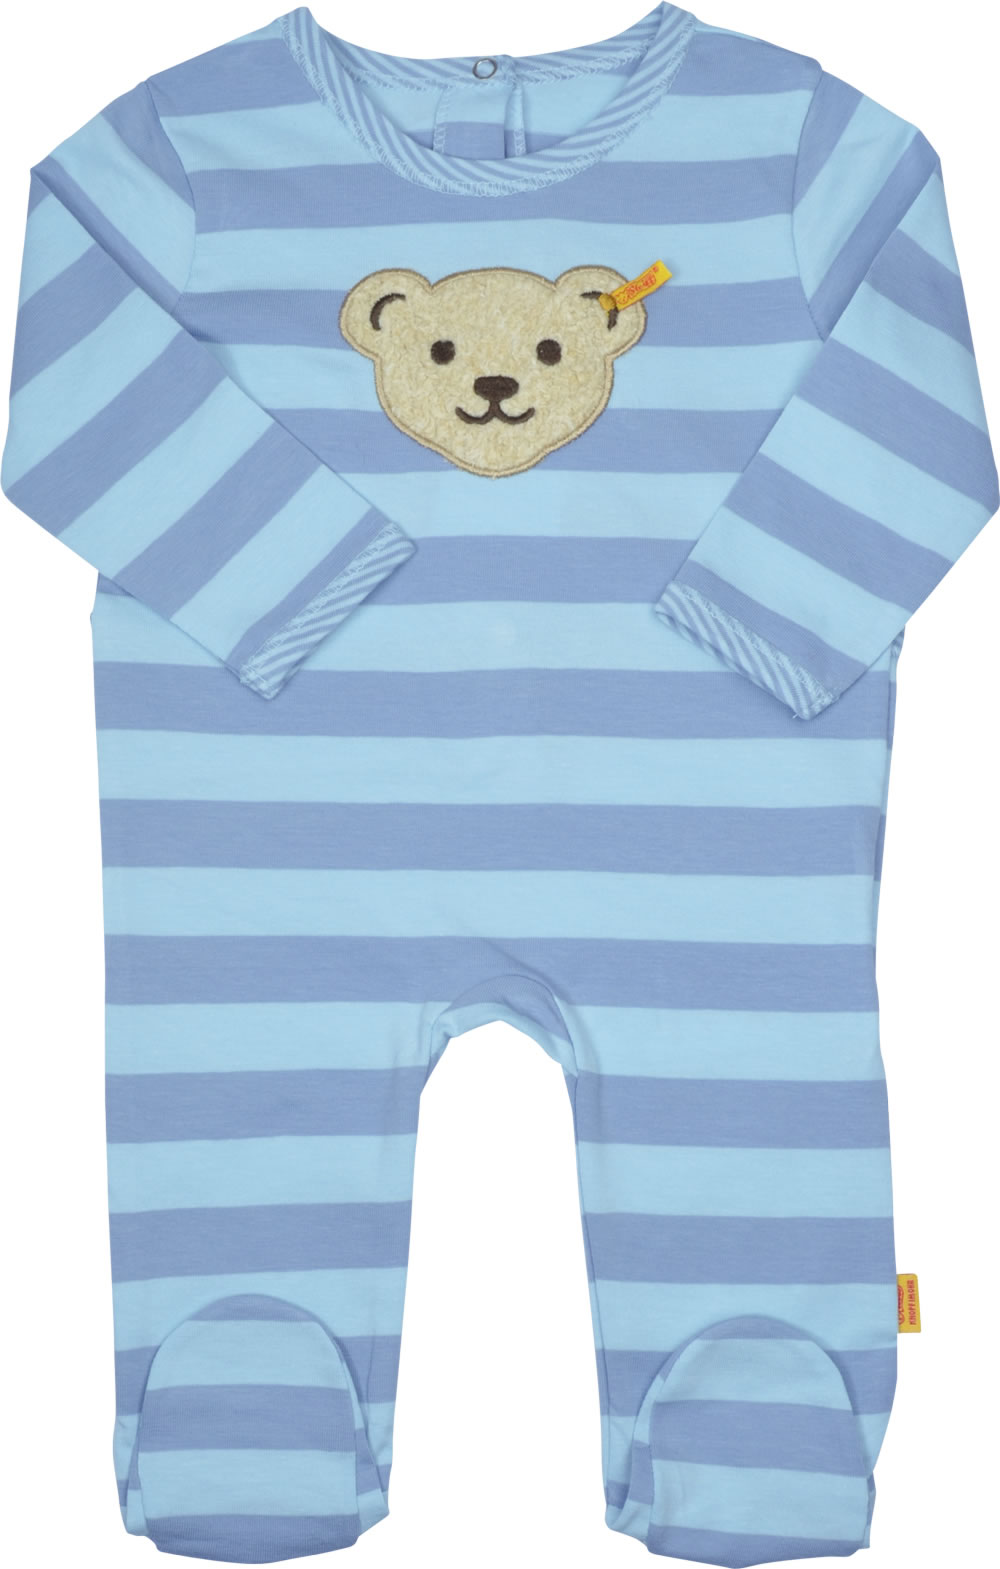 Steiff Romper 2-piece Set Oeko-tex Boy Navy